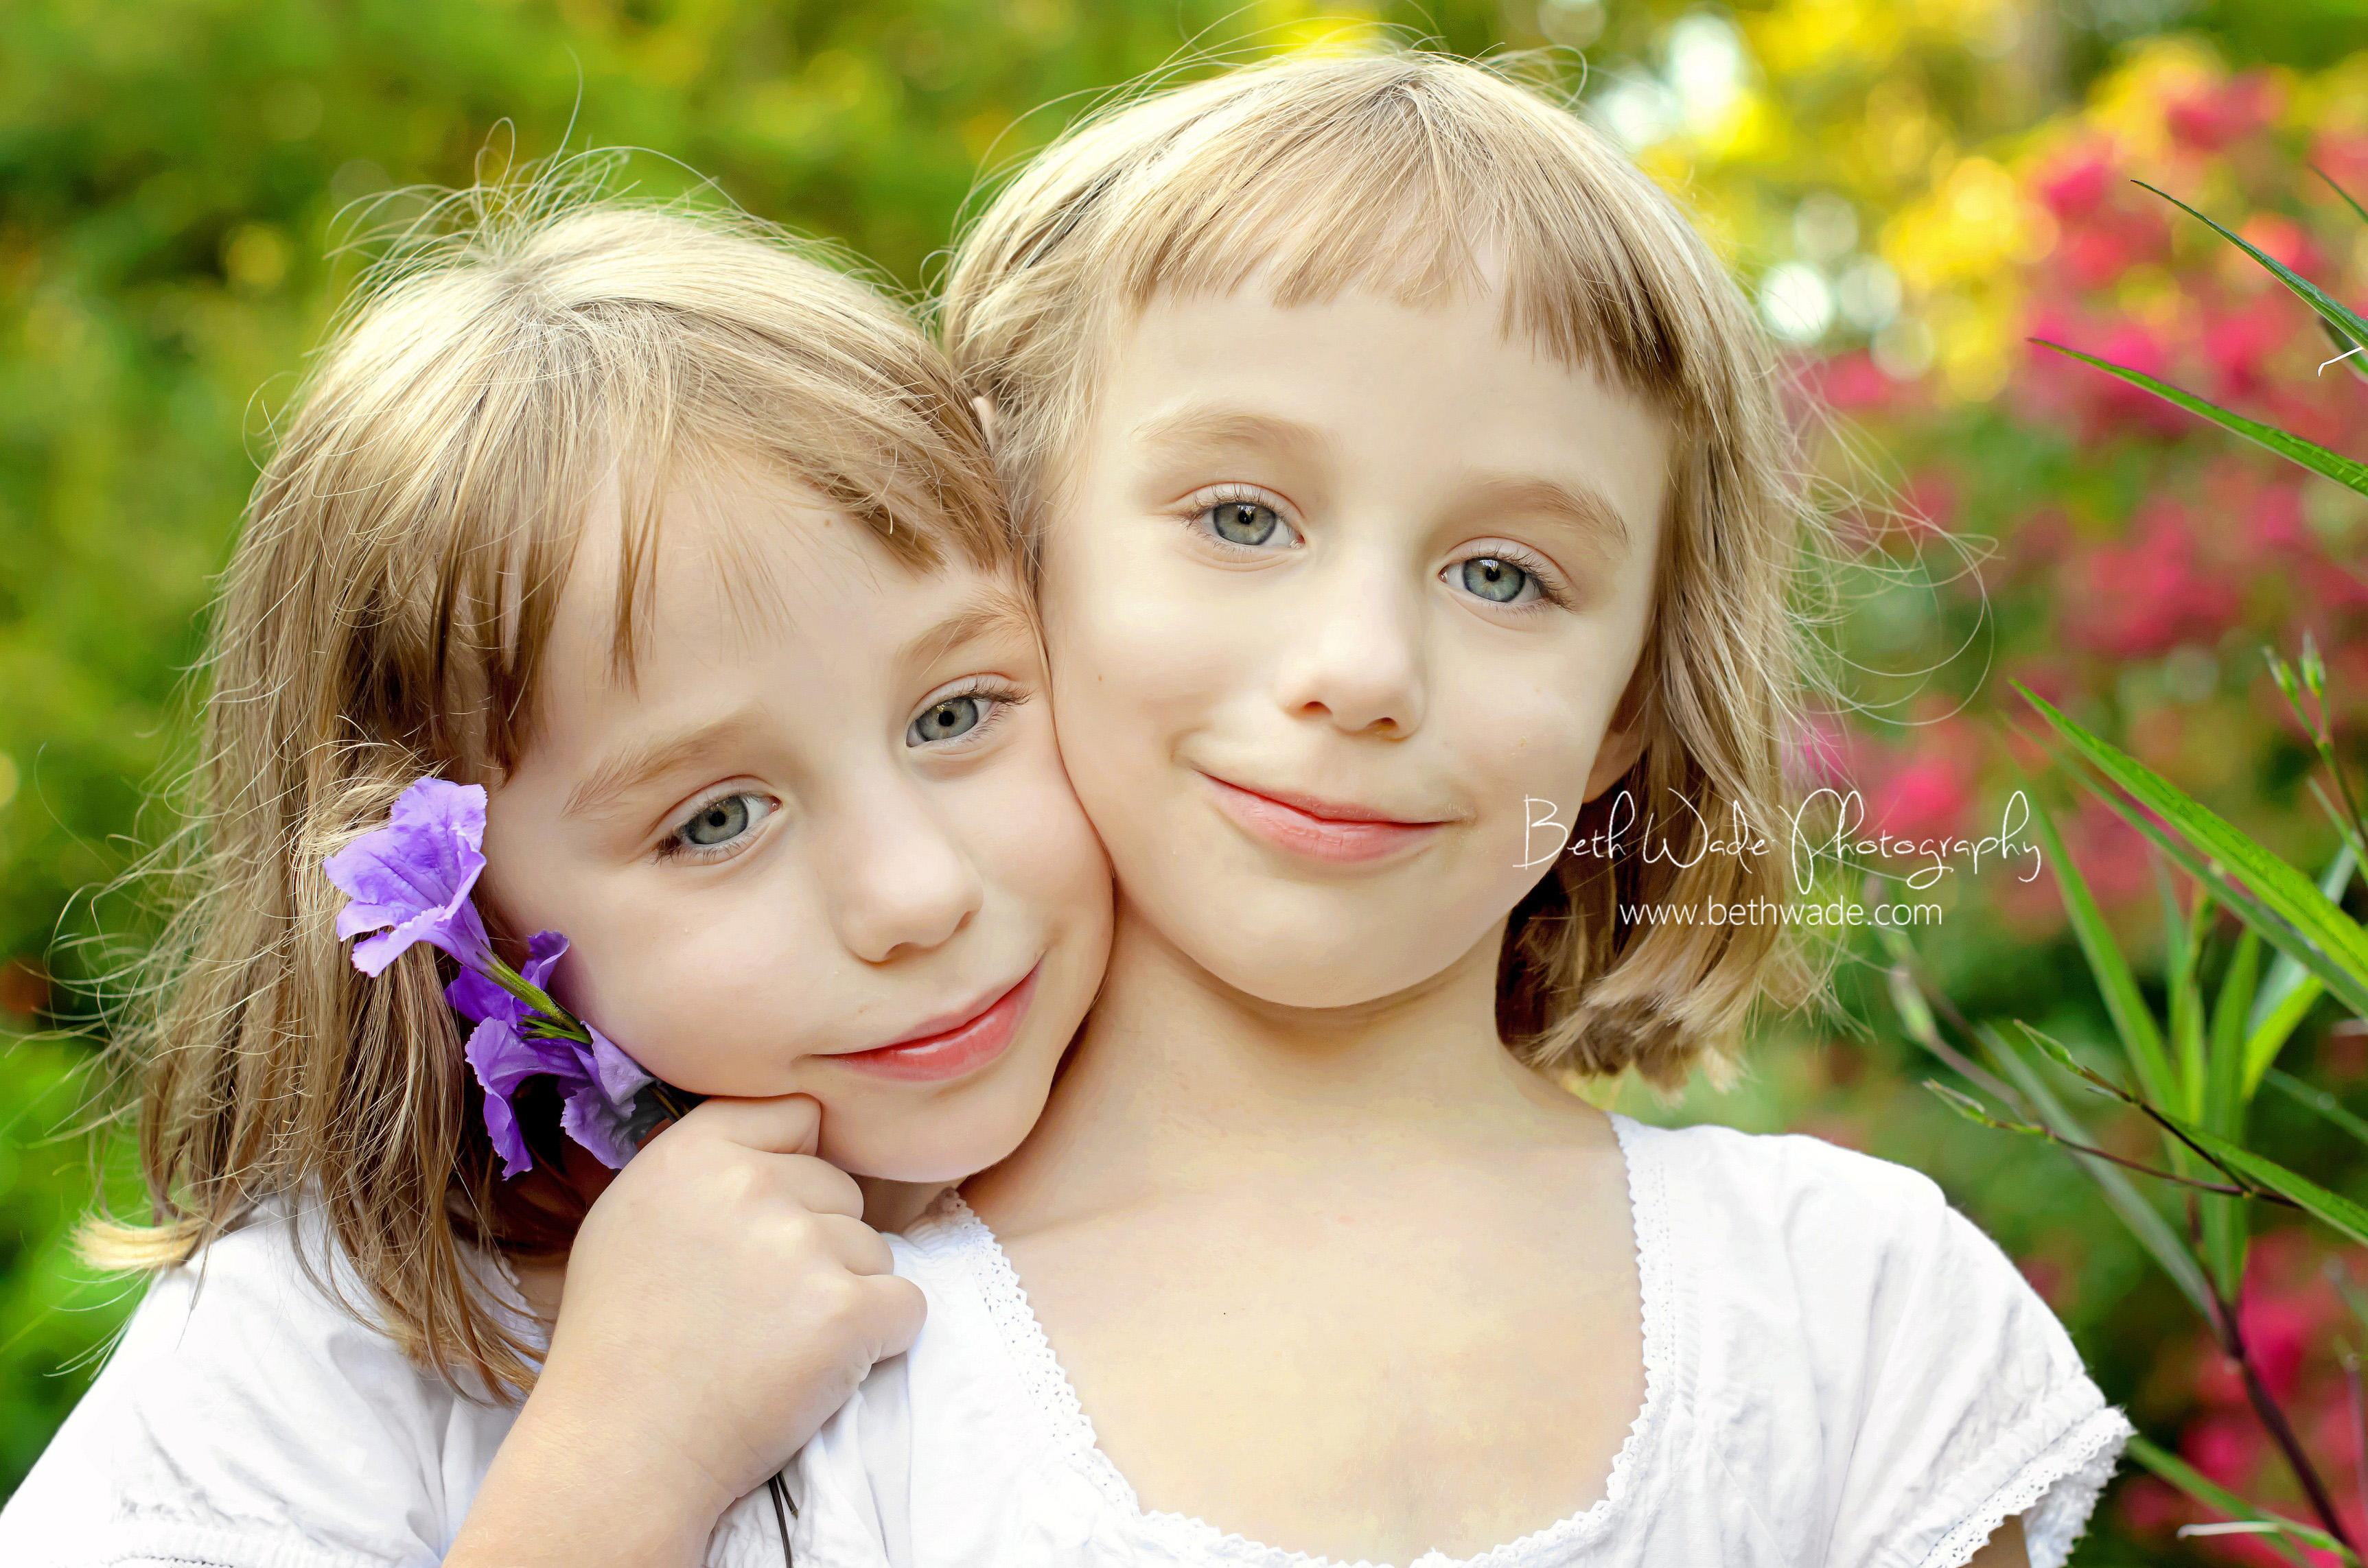 twin lake black single women Senior singles know seniorpeoplemeetcom is the premier online dating destination for senior dating browse mature and single senior women and senior men for free.